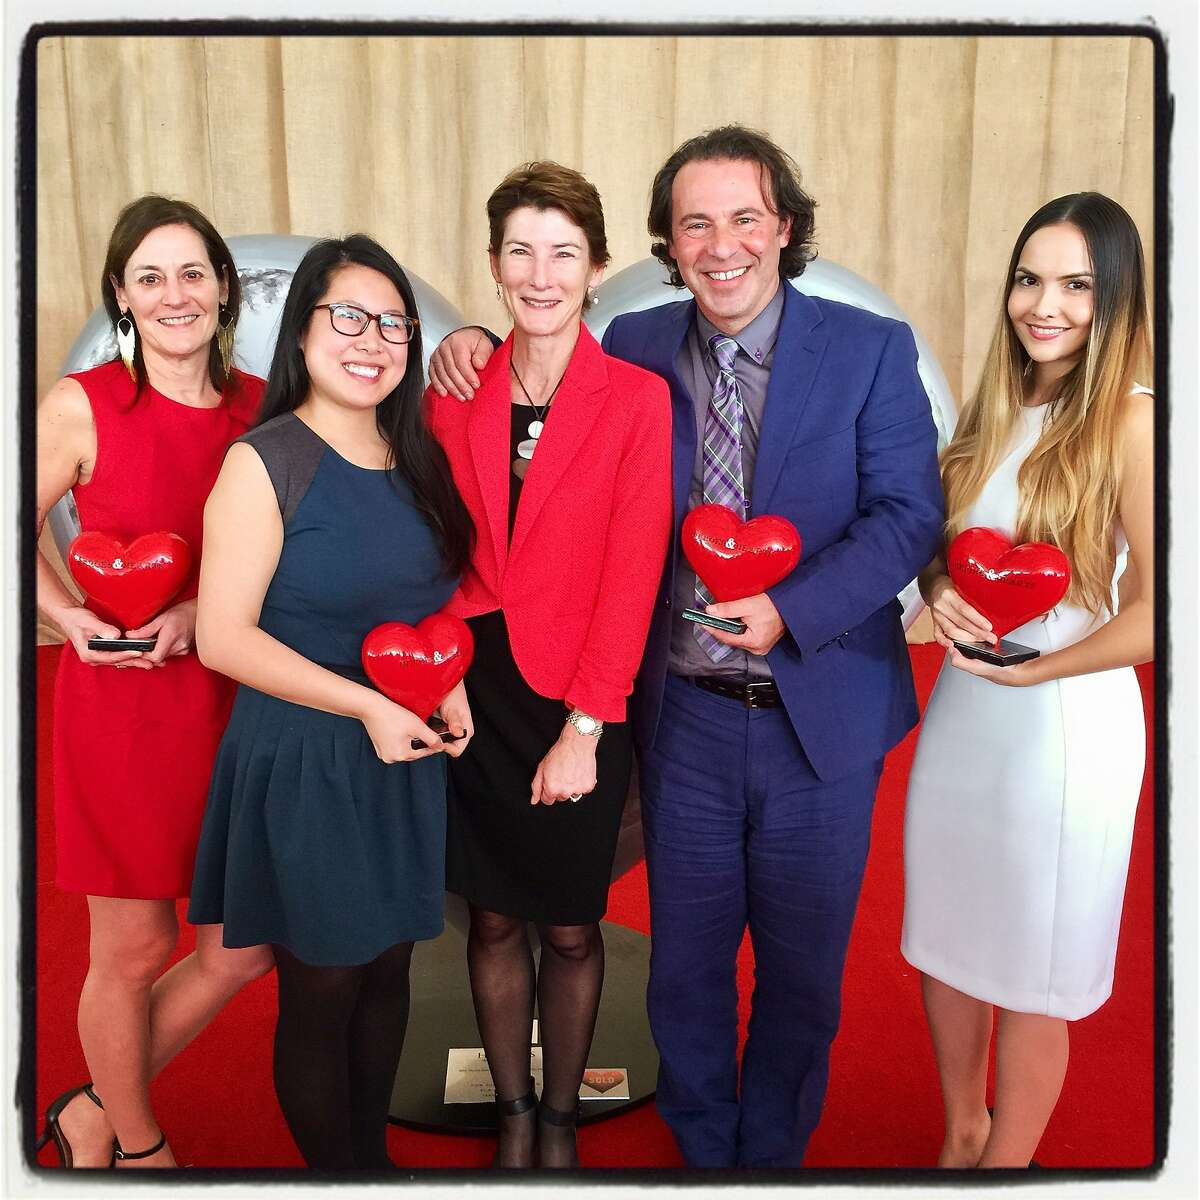 """ZSFG """"Heroes & Hearts"""" honorees (from left) Dr. Margaret Knudson, Jia Min Cheng, with ZSFG CEO Dr. Susan Ehrlich, Dean Schillinger and Anais Amaya. Feb. 16. 2017"""